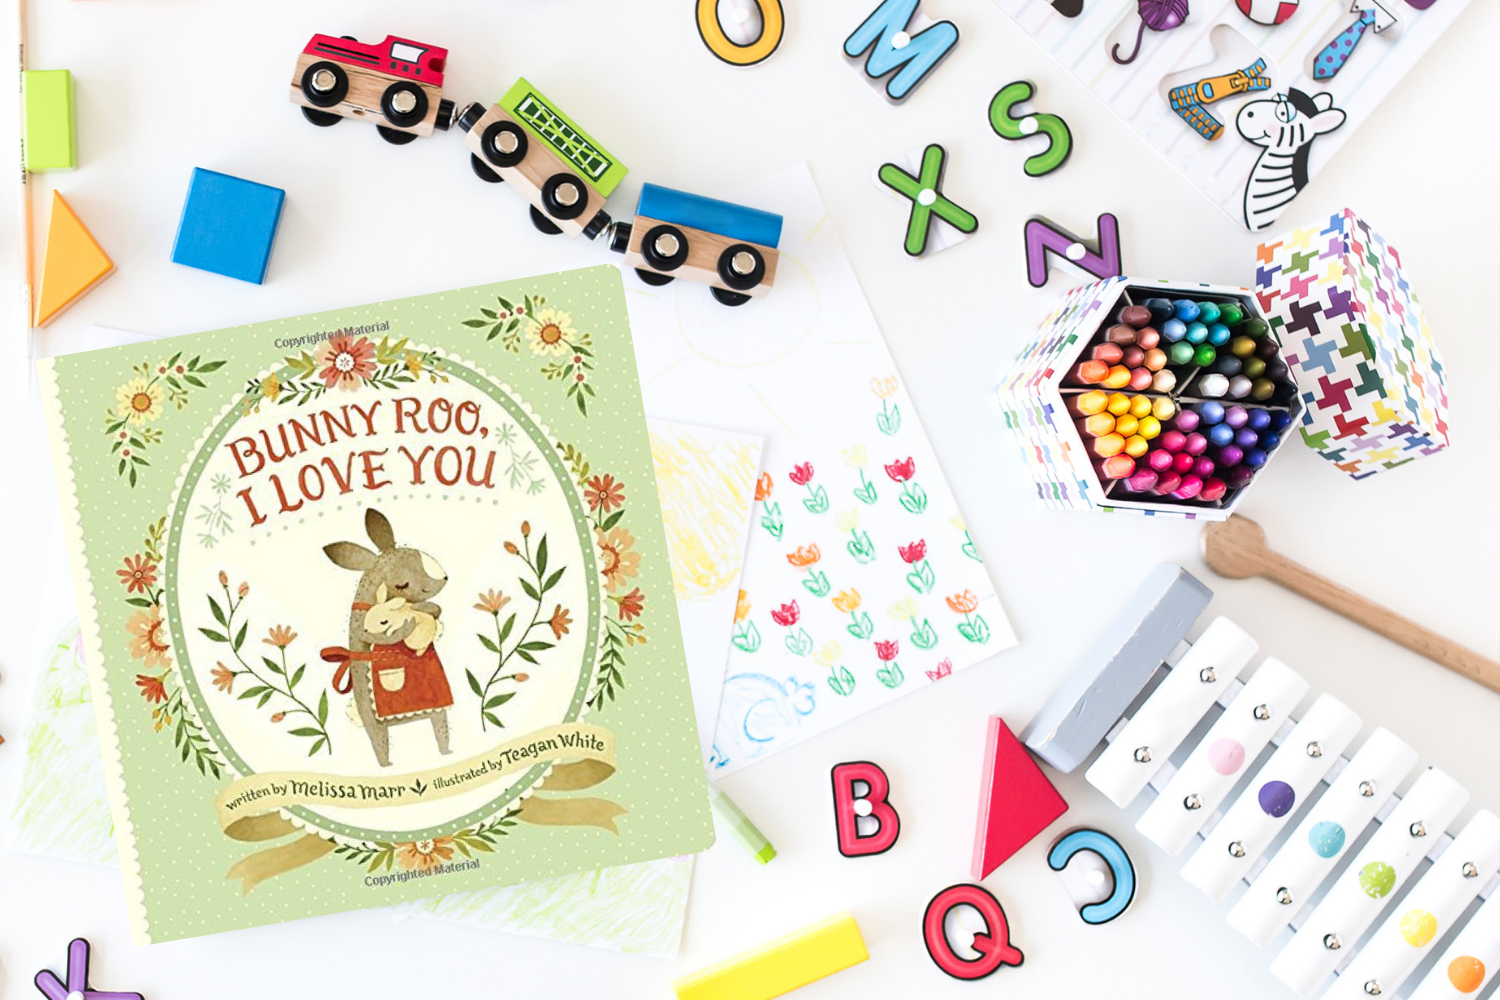 Bunny Roo I Love You - Books from Past Boxes of Tiny Humans Read Kids Book Subscription Box